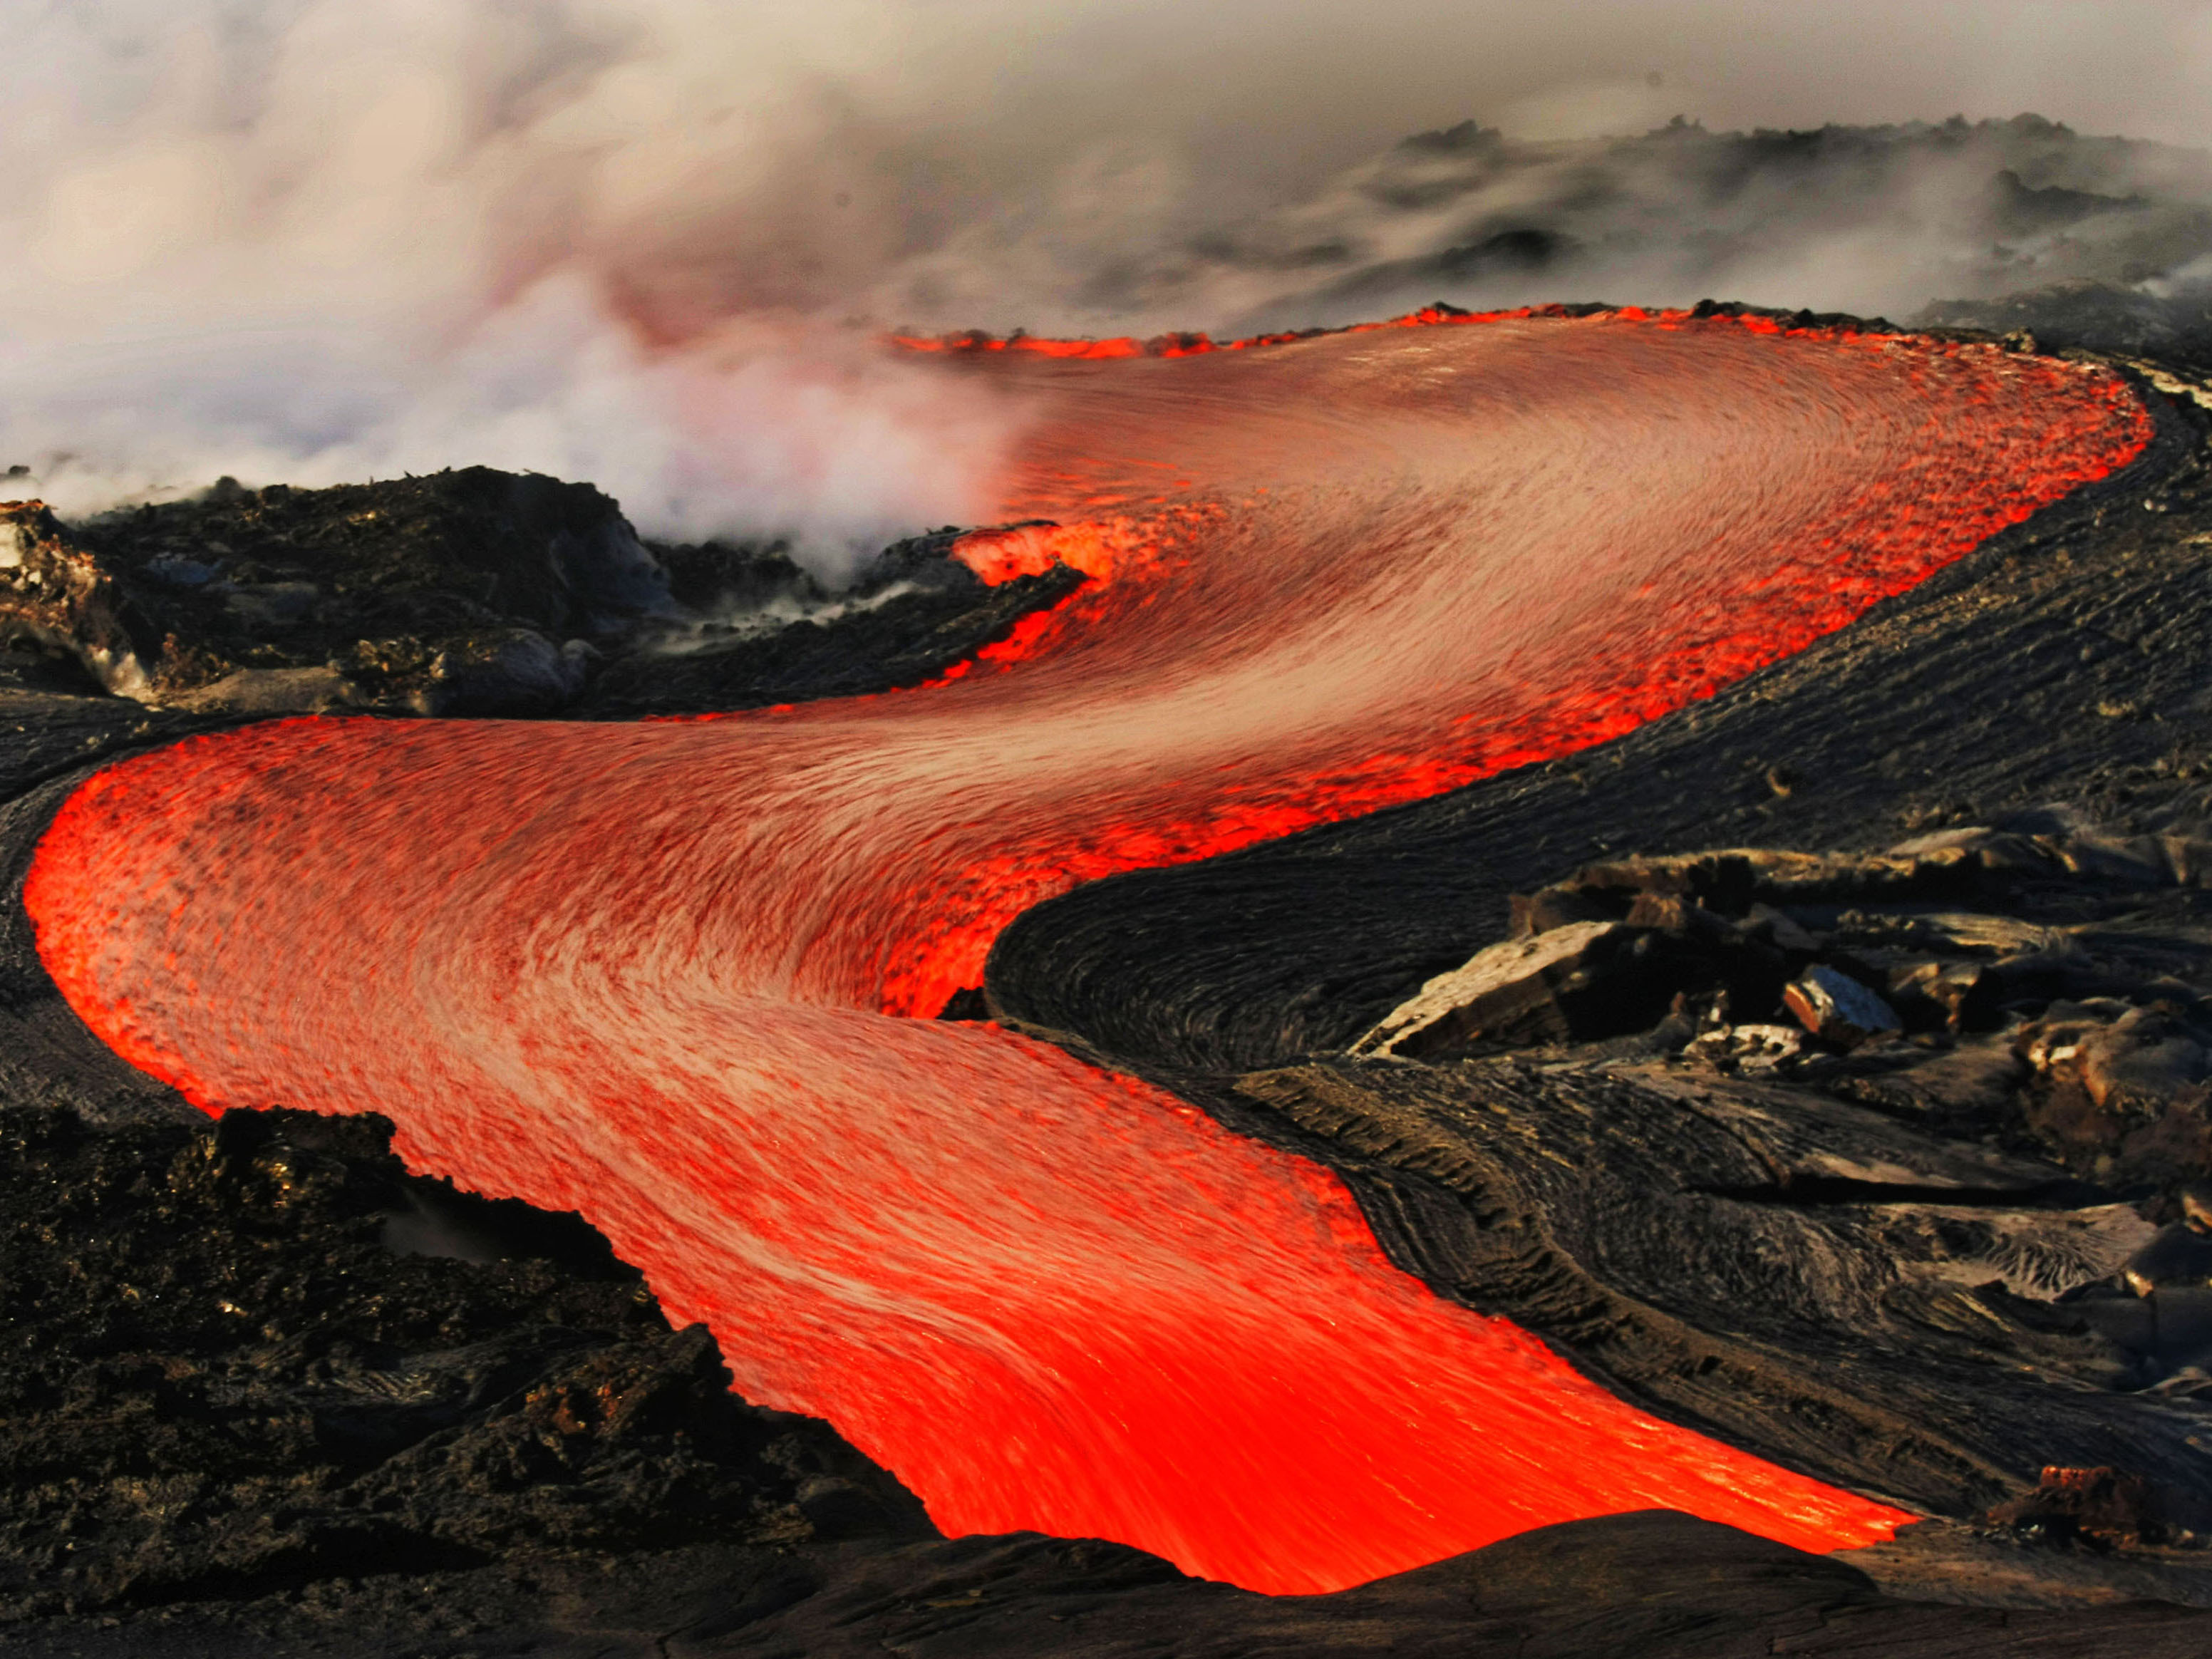 dramatic lava flow in hawaii photo 1 pictures cbs news. Black Bedroom Furniture Sets. Home Design Ideas